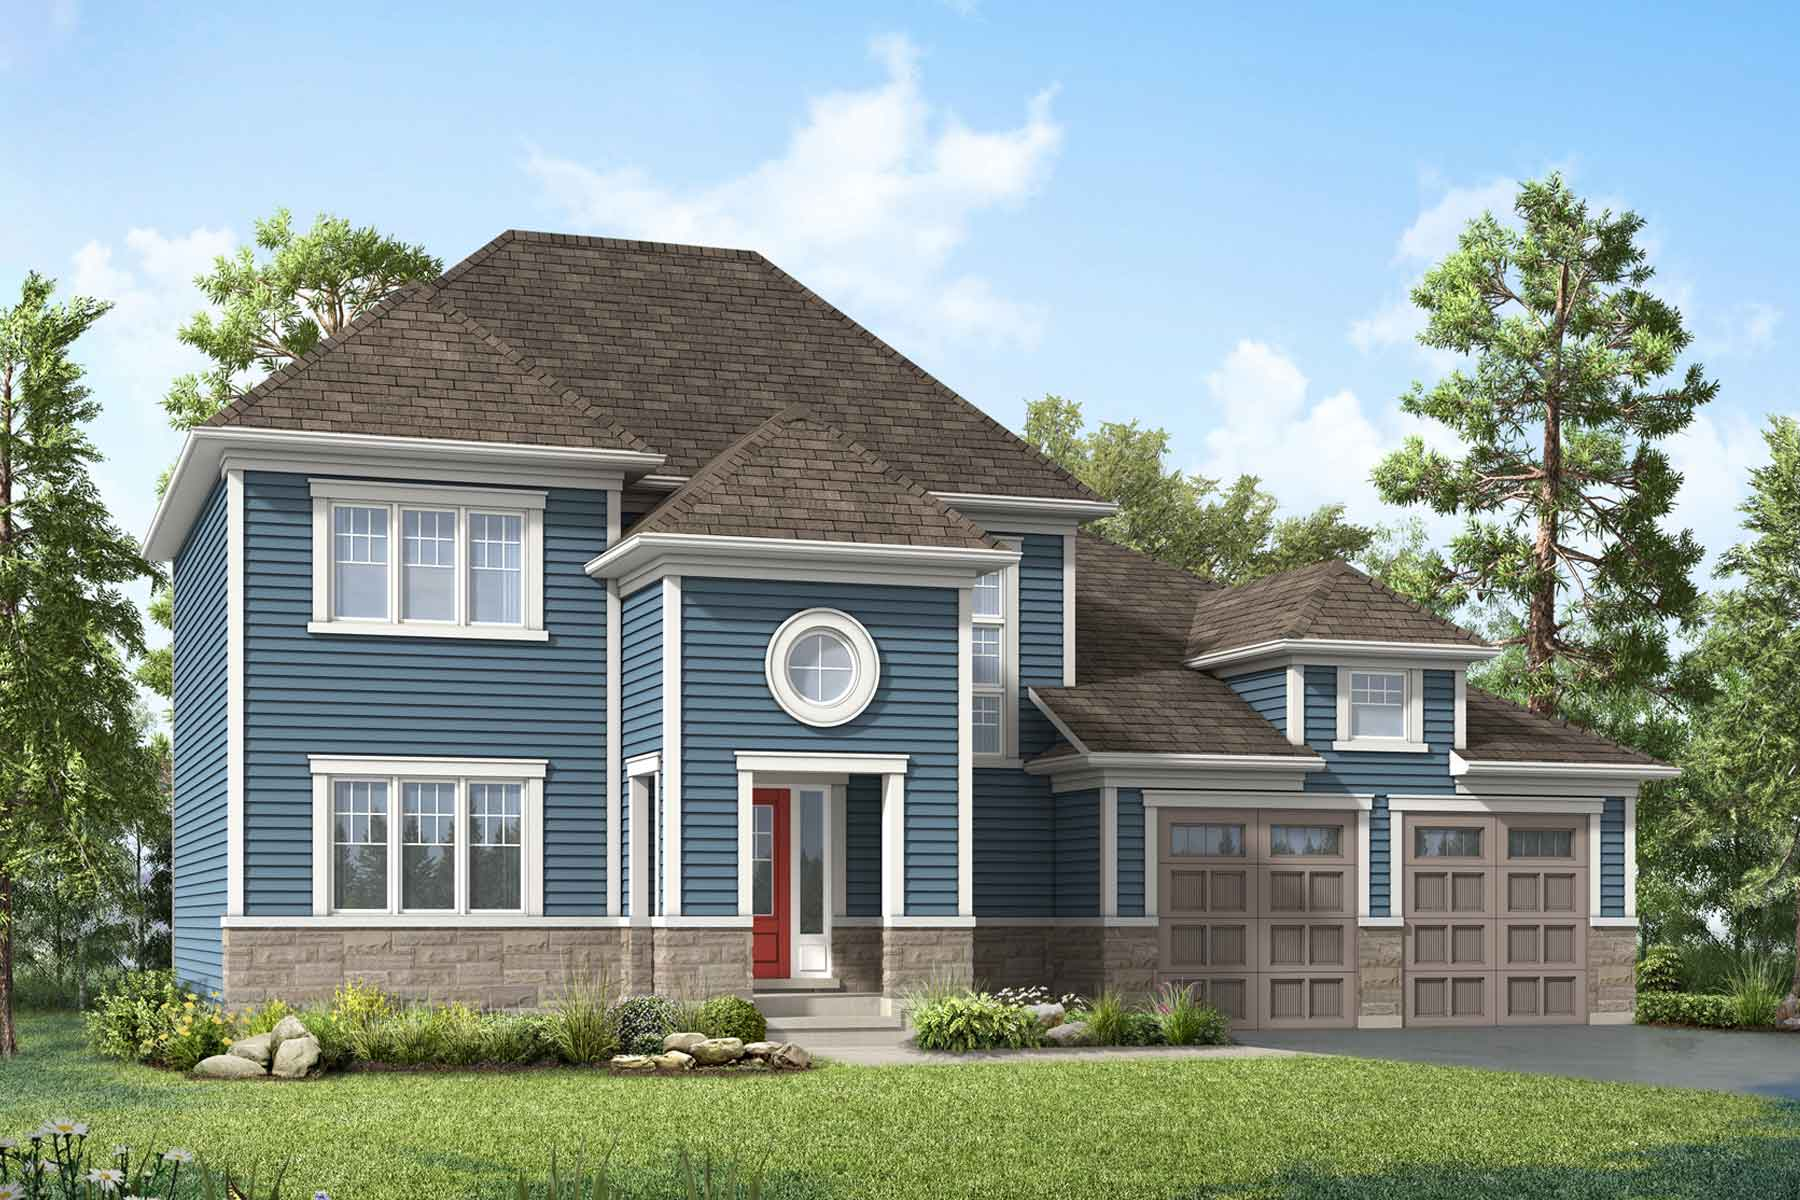 Aspen Plan coastal_whitepines_aspen at White Pines in Bracebridge Ontario by Mattamy Homes